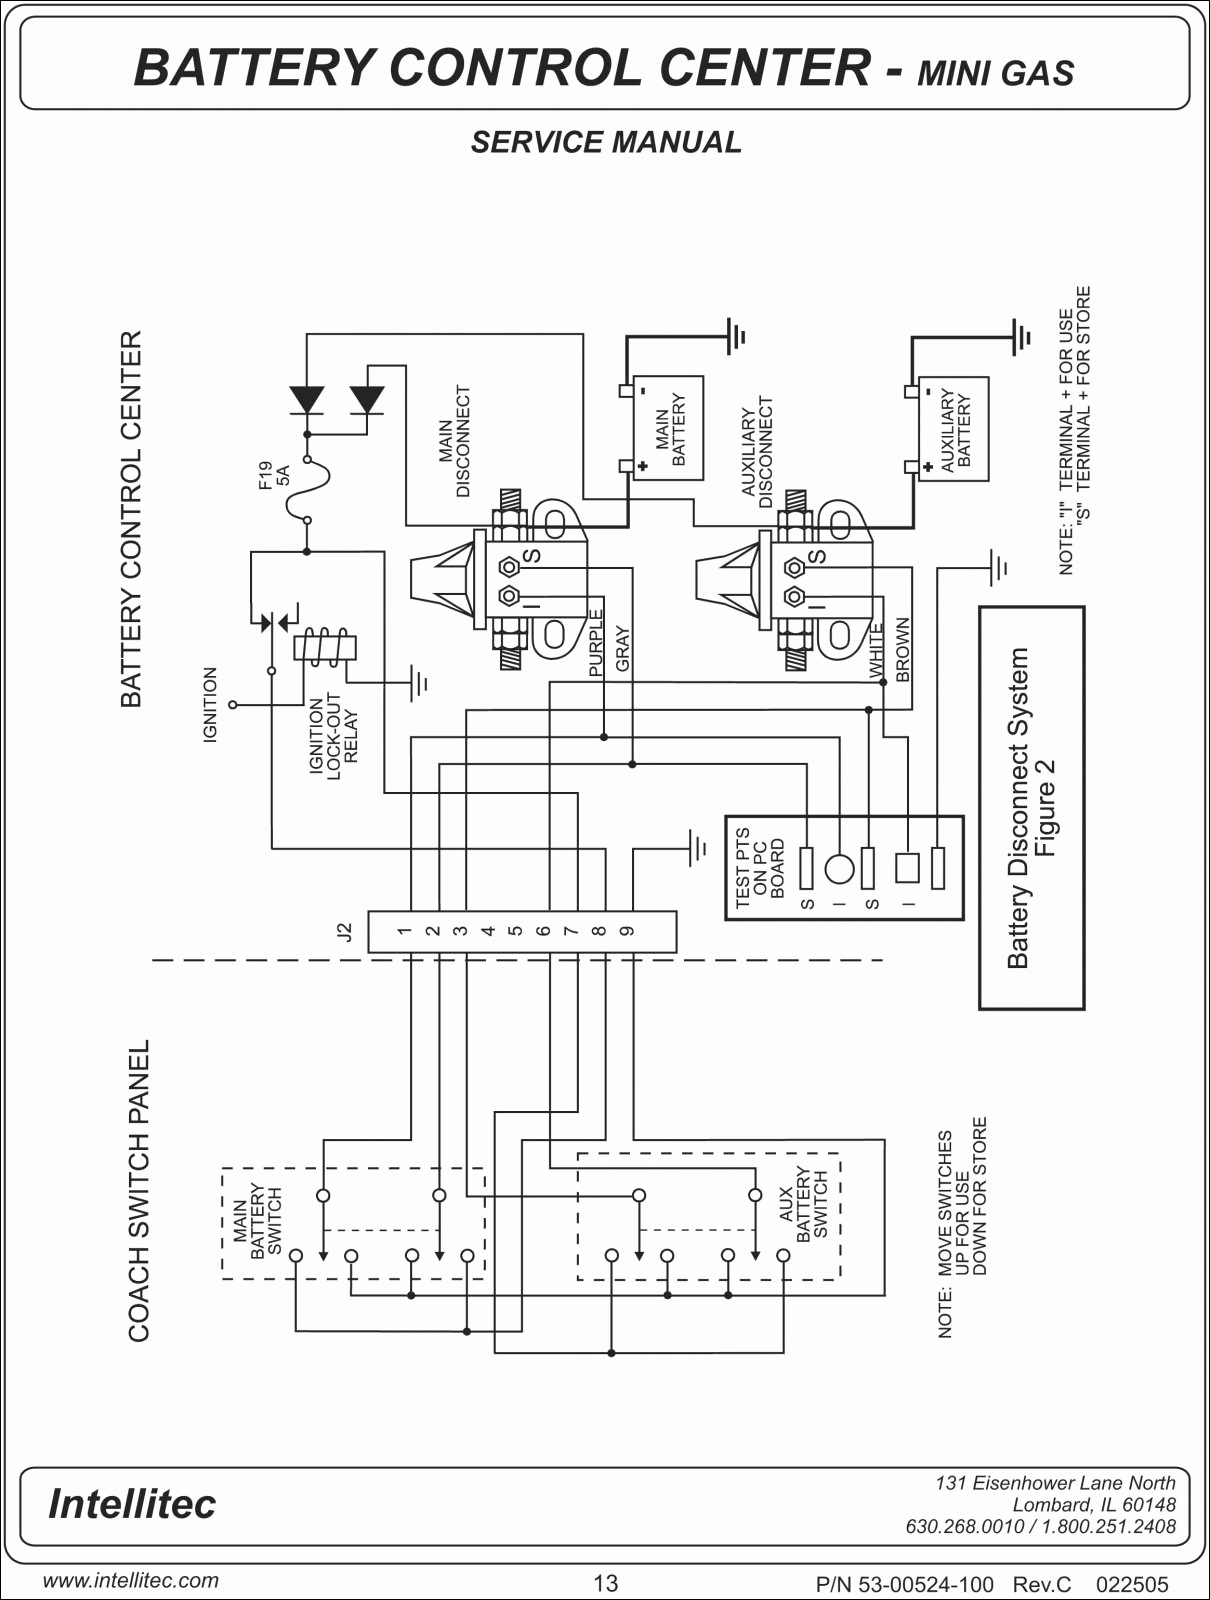 Get Generac 200 Amp Transfer Switch Wiring Diagram Sample - Generac 200 Amp Transfer Switch Wiring Diagram